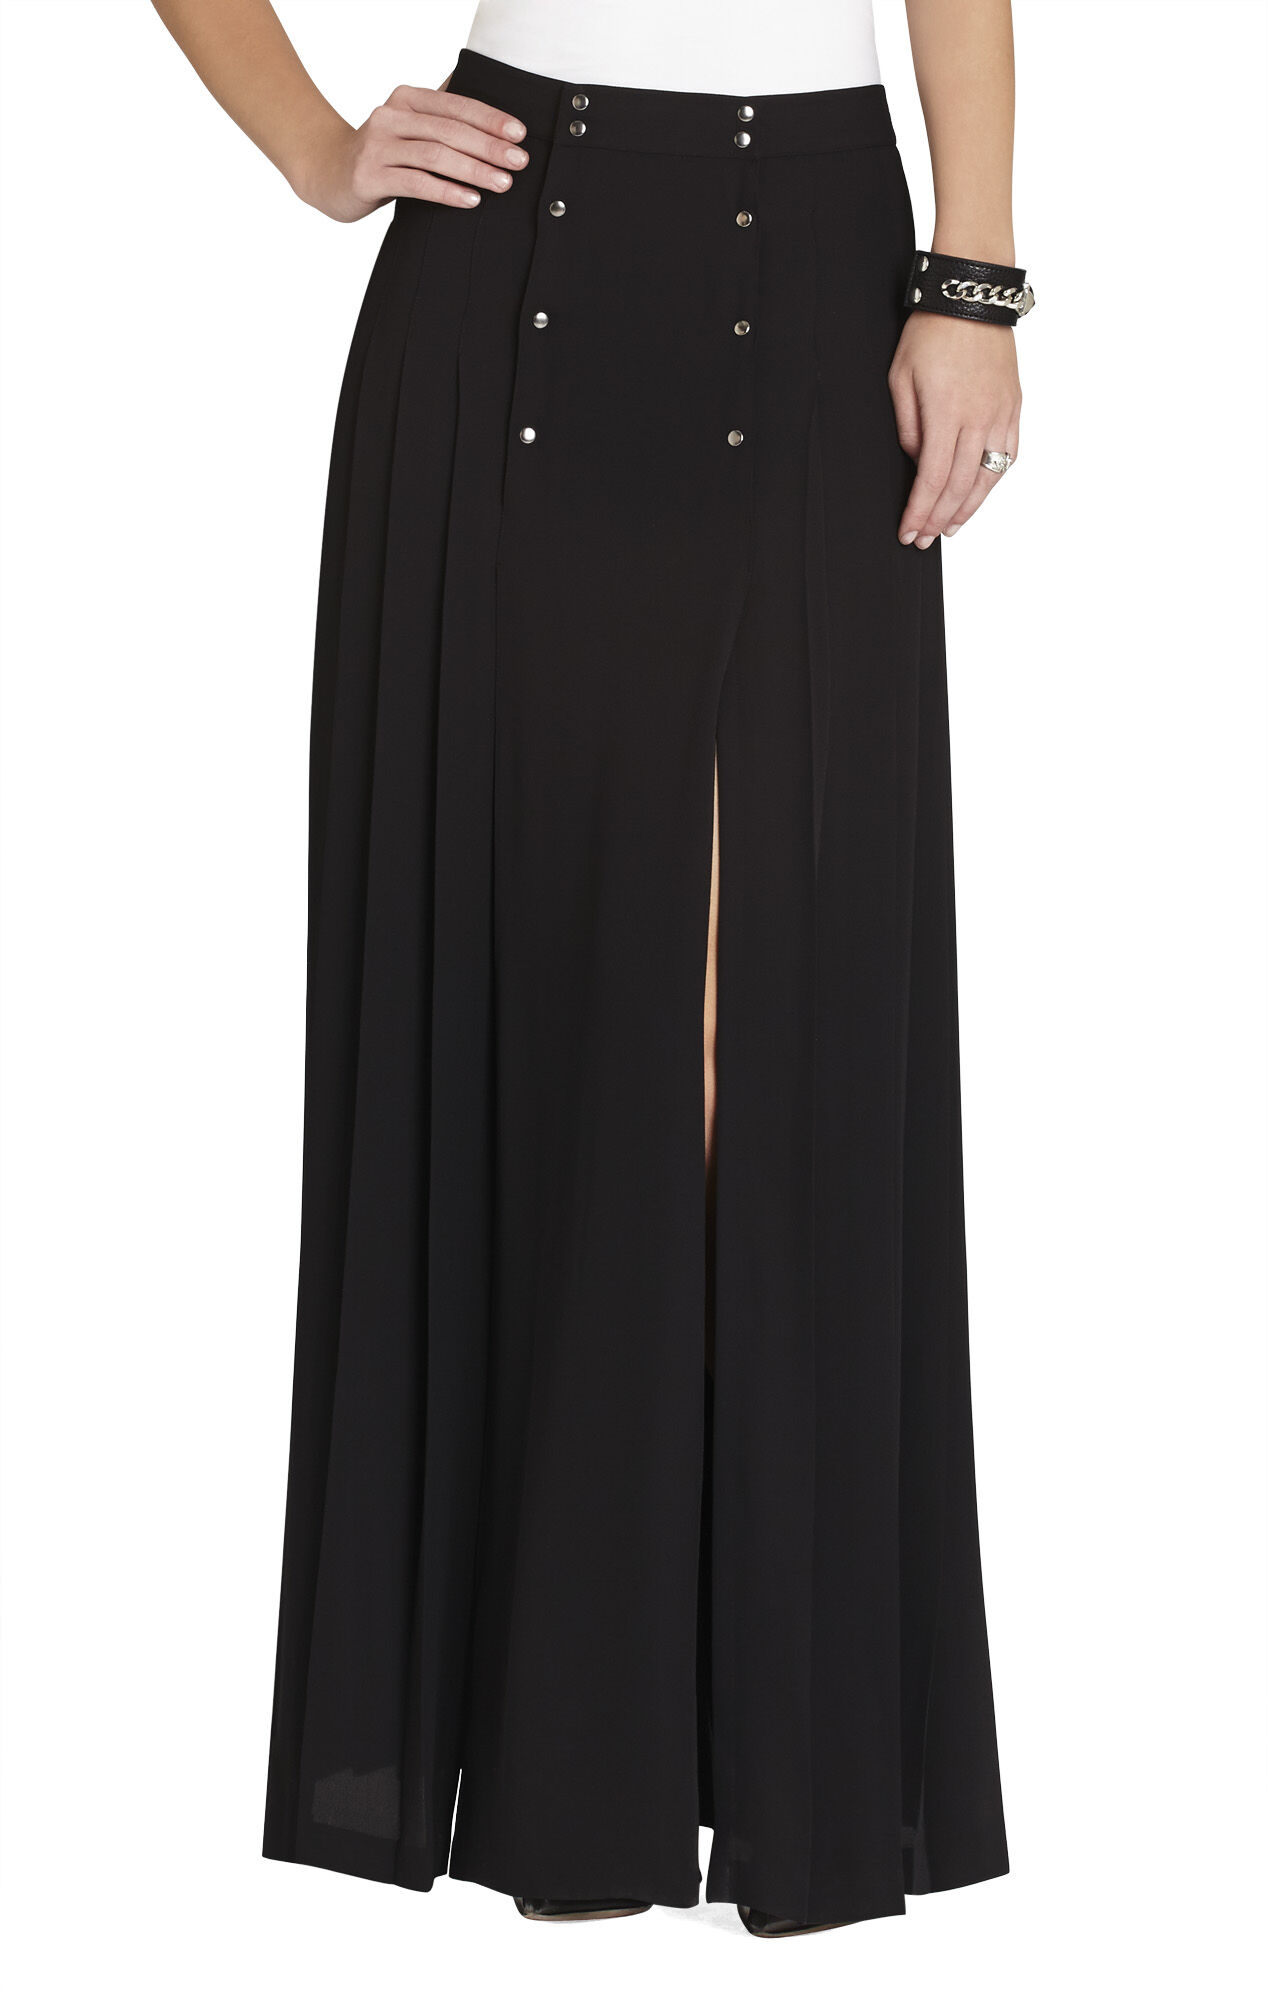 Lanae Snap-Front Long Pleated Skirt